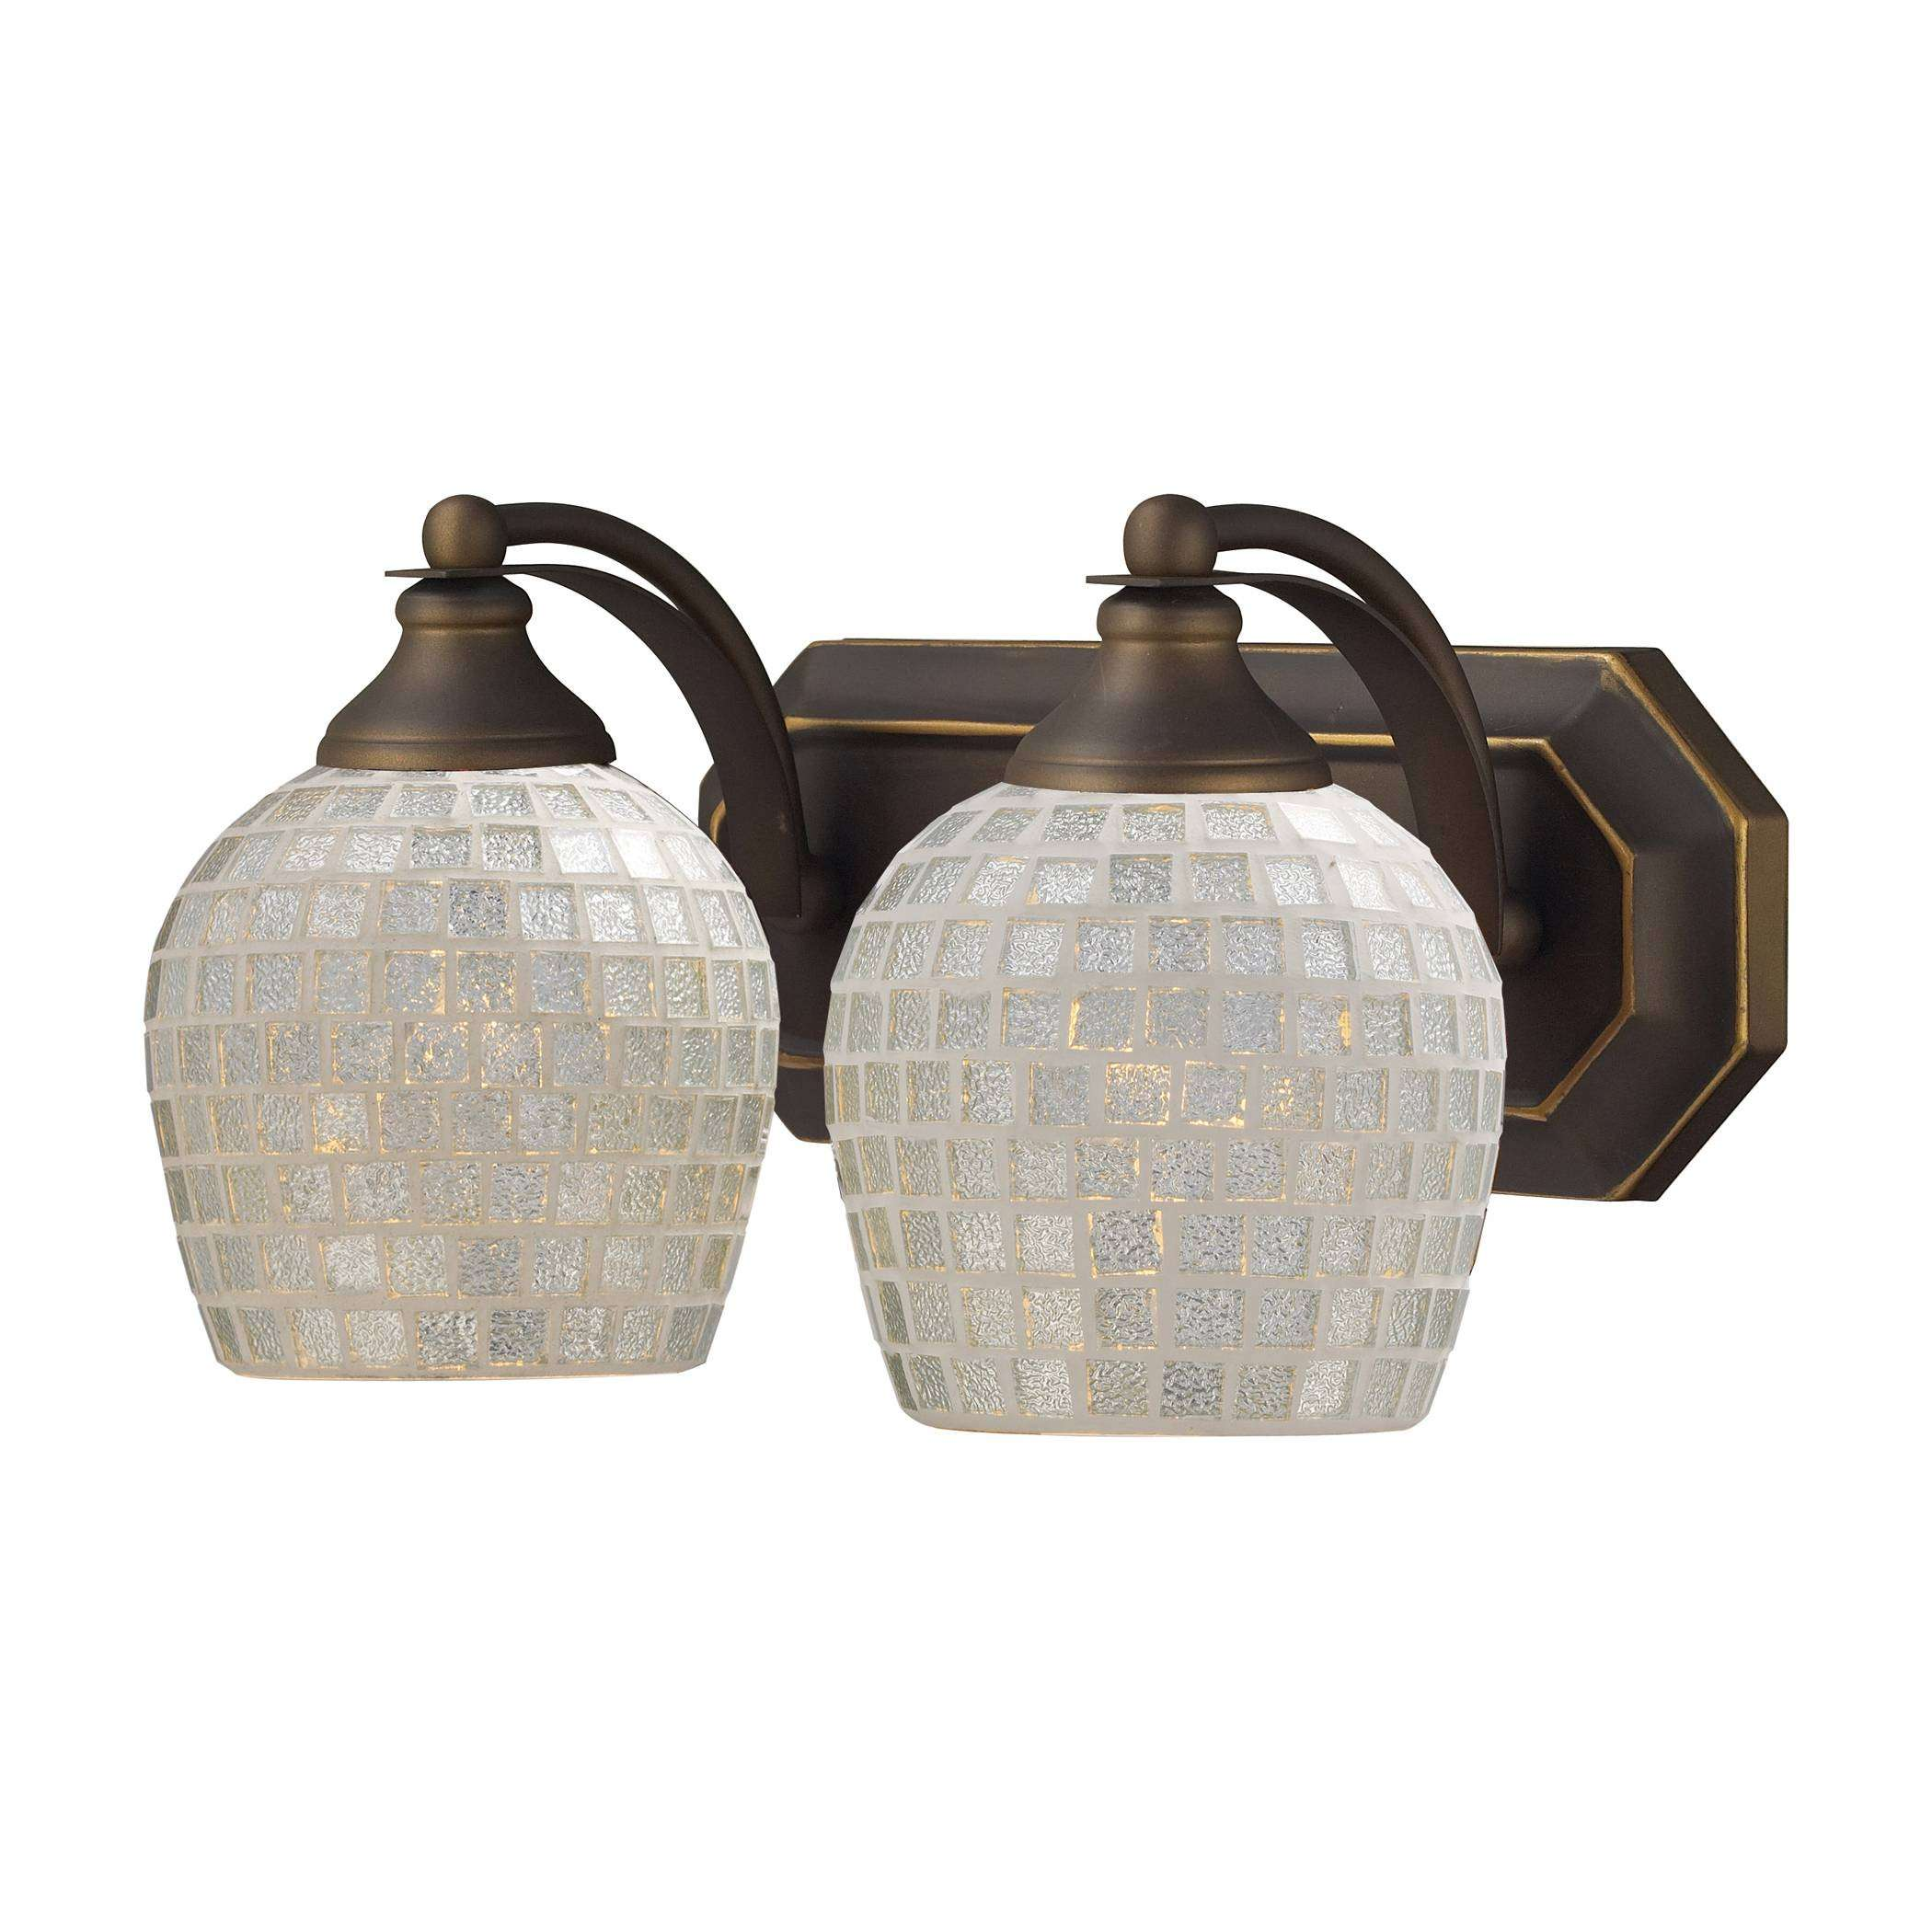 Elk Lighting 570-2B-SLV 2 Light Vanity In Aged Bronze And Silver Mosaic Glass